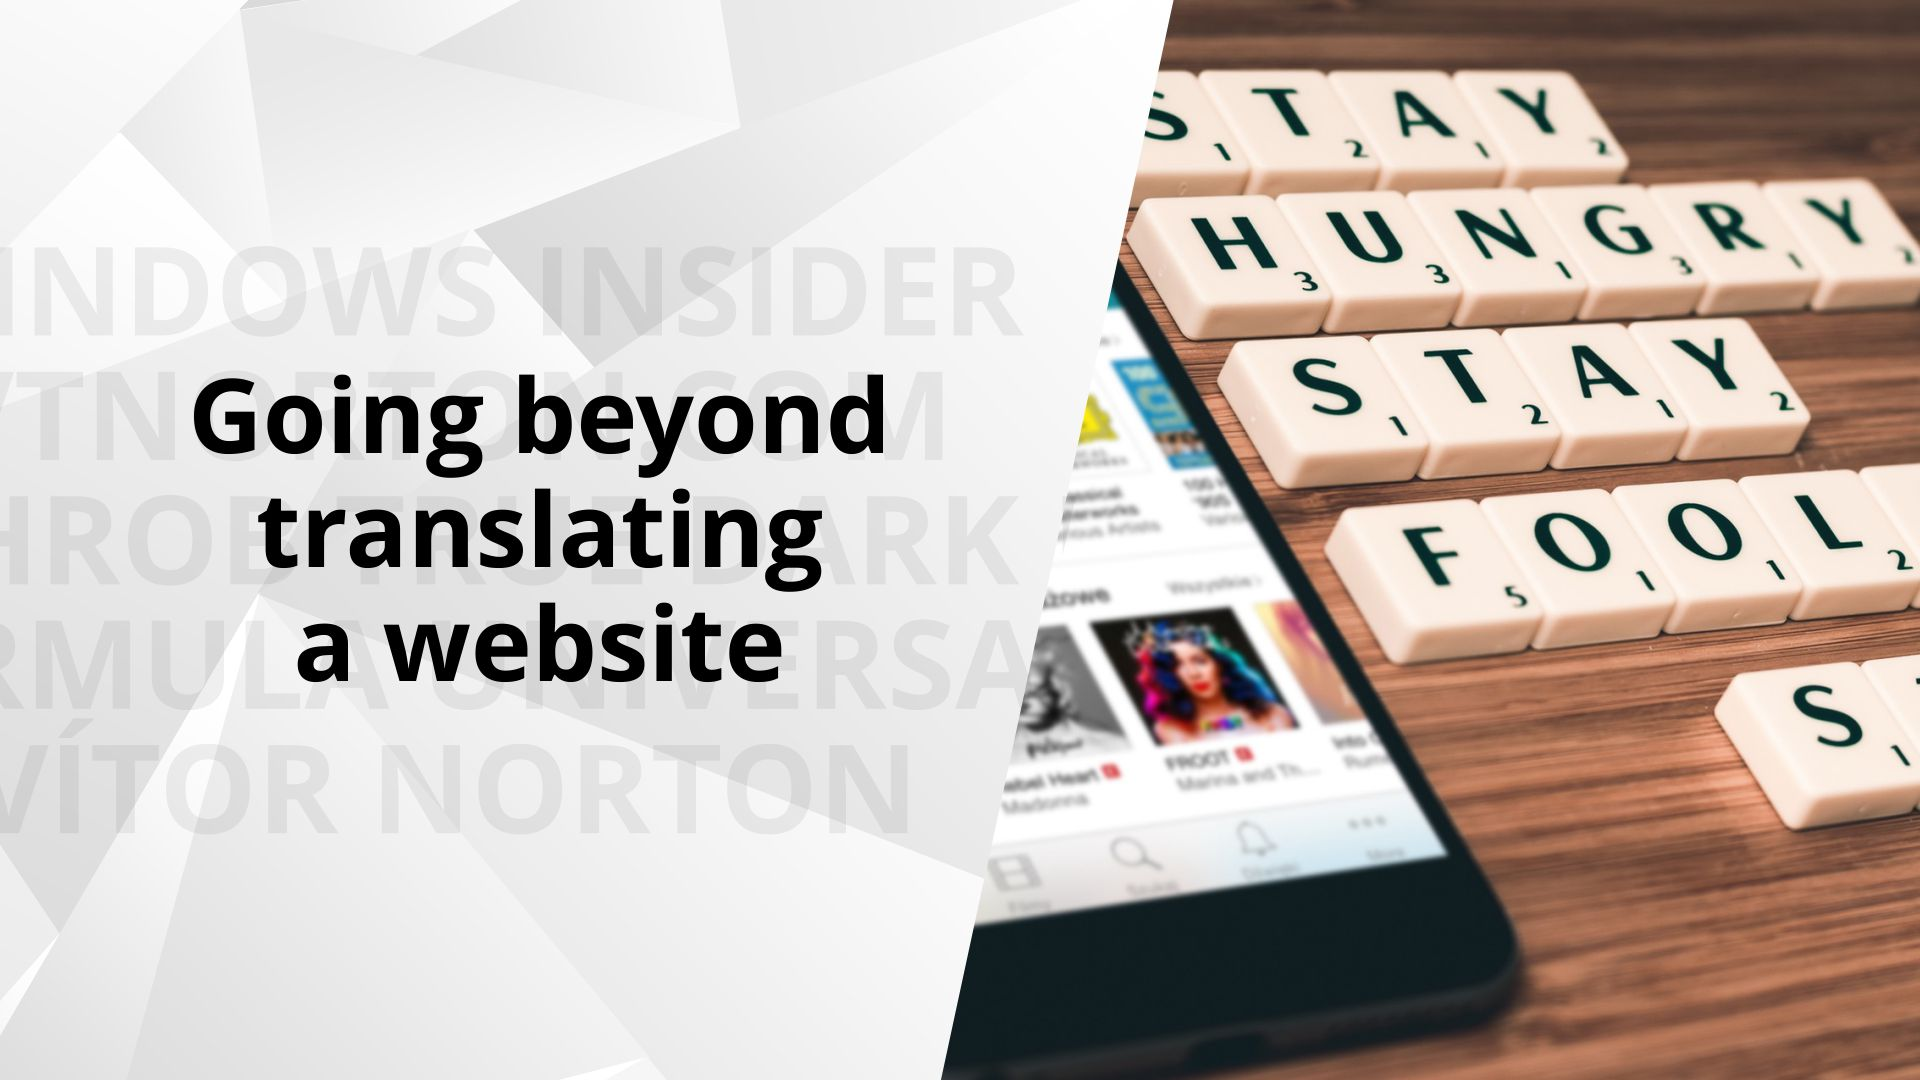 Going beyond translating a website